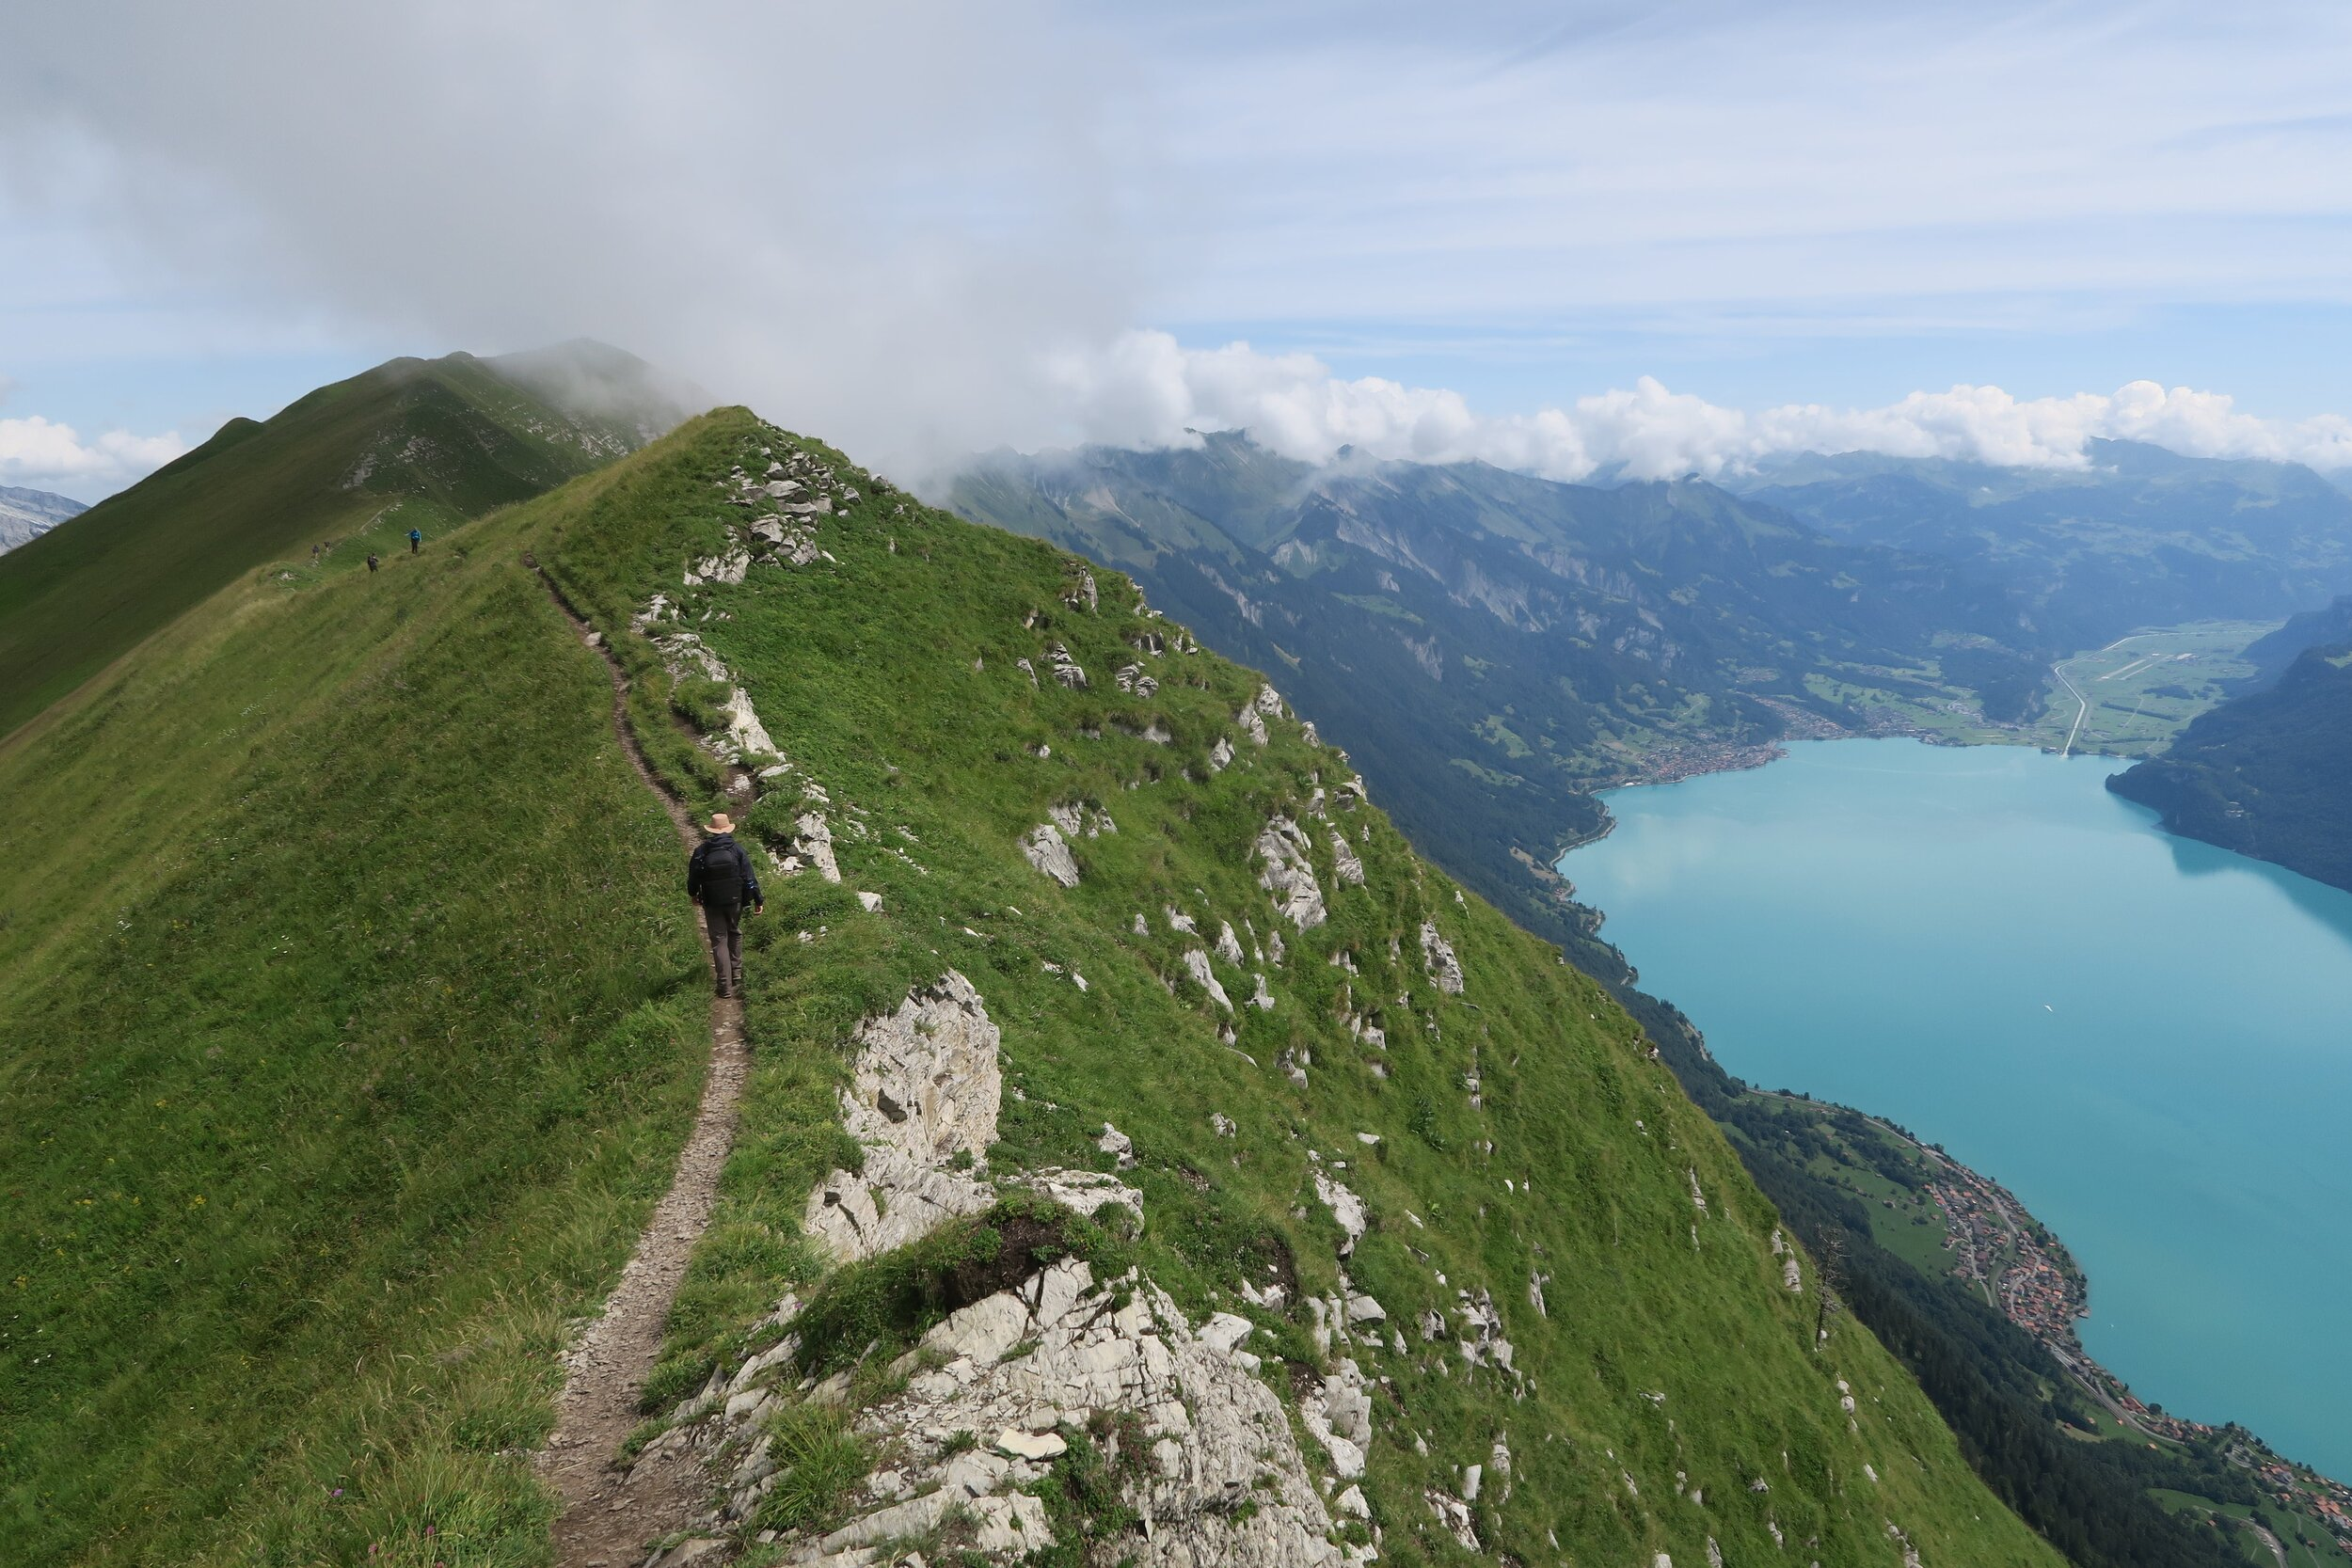 The Hardegrat Trail in Switzerland is one of the best hikes in Europe. Look at those views!